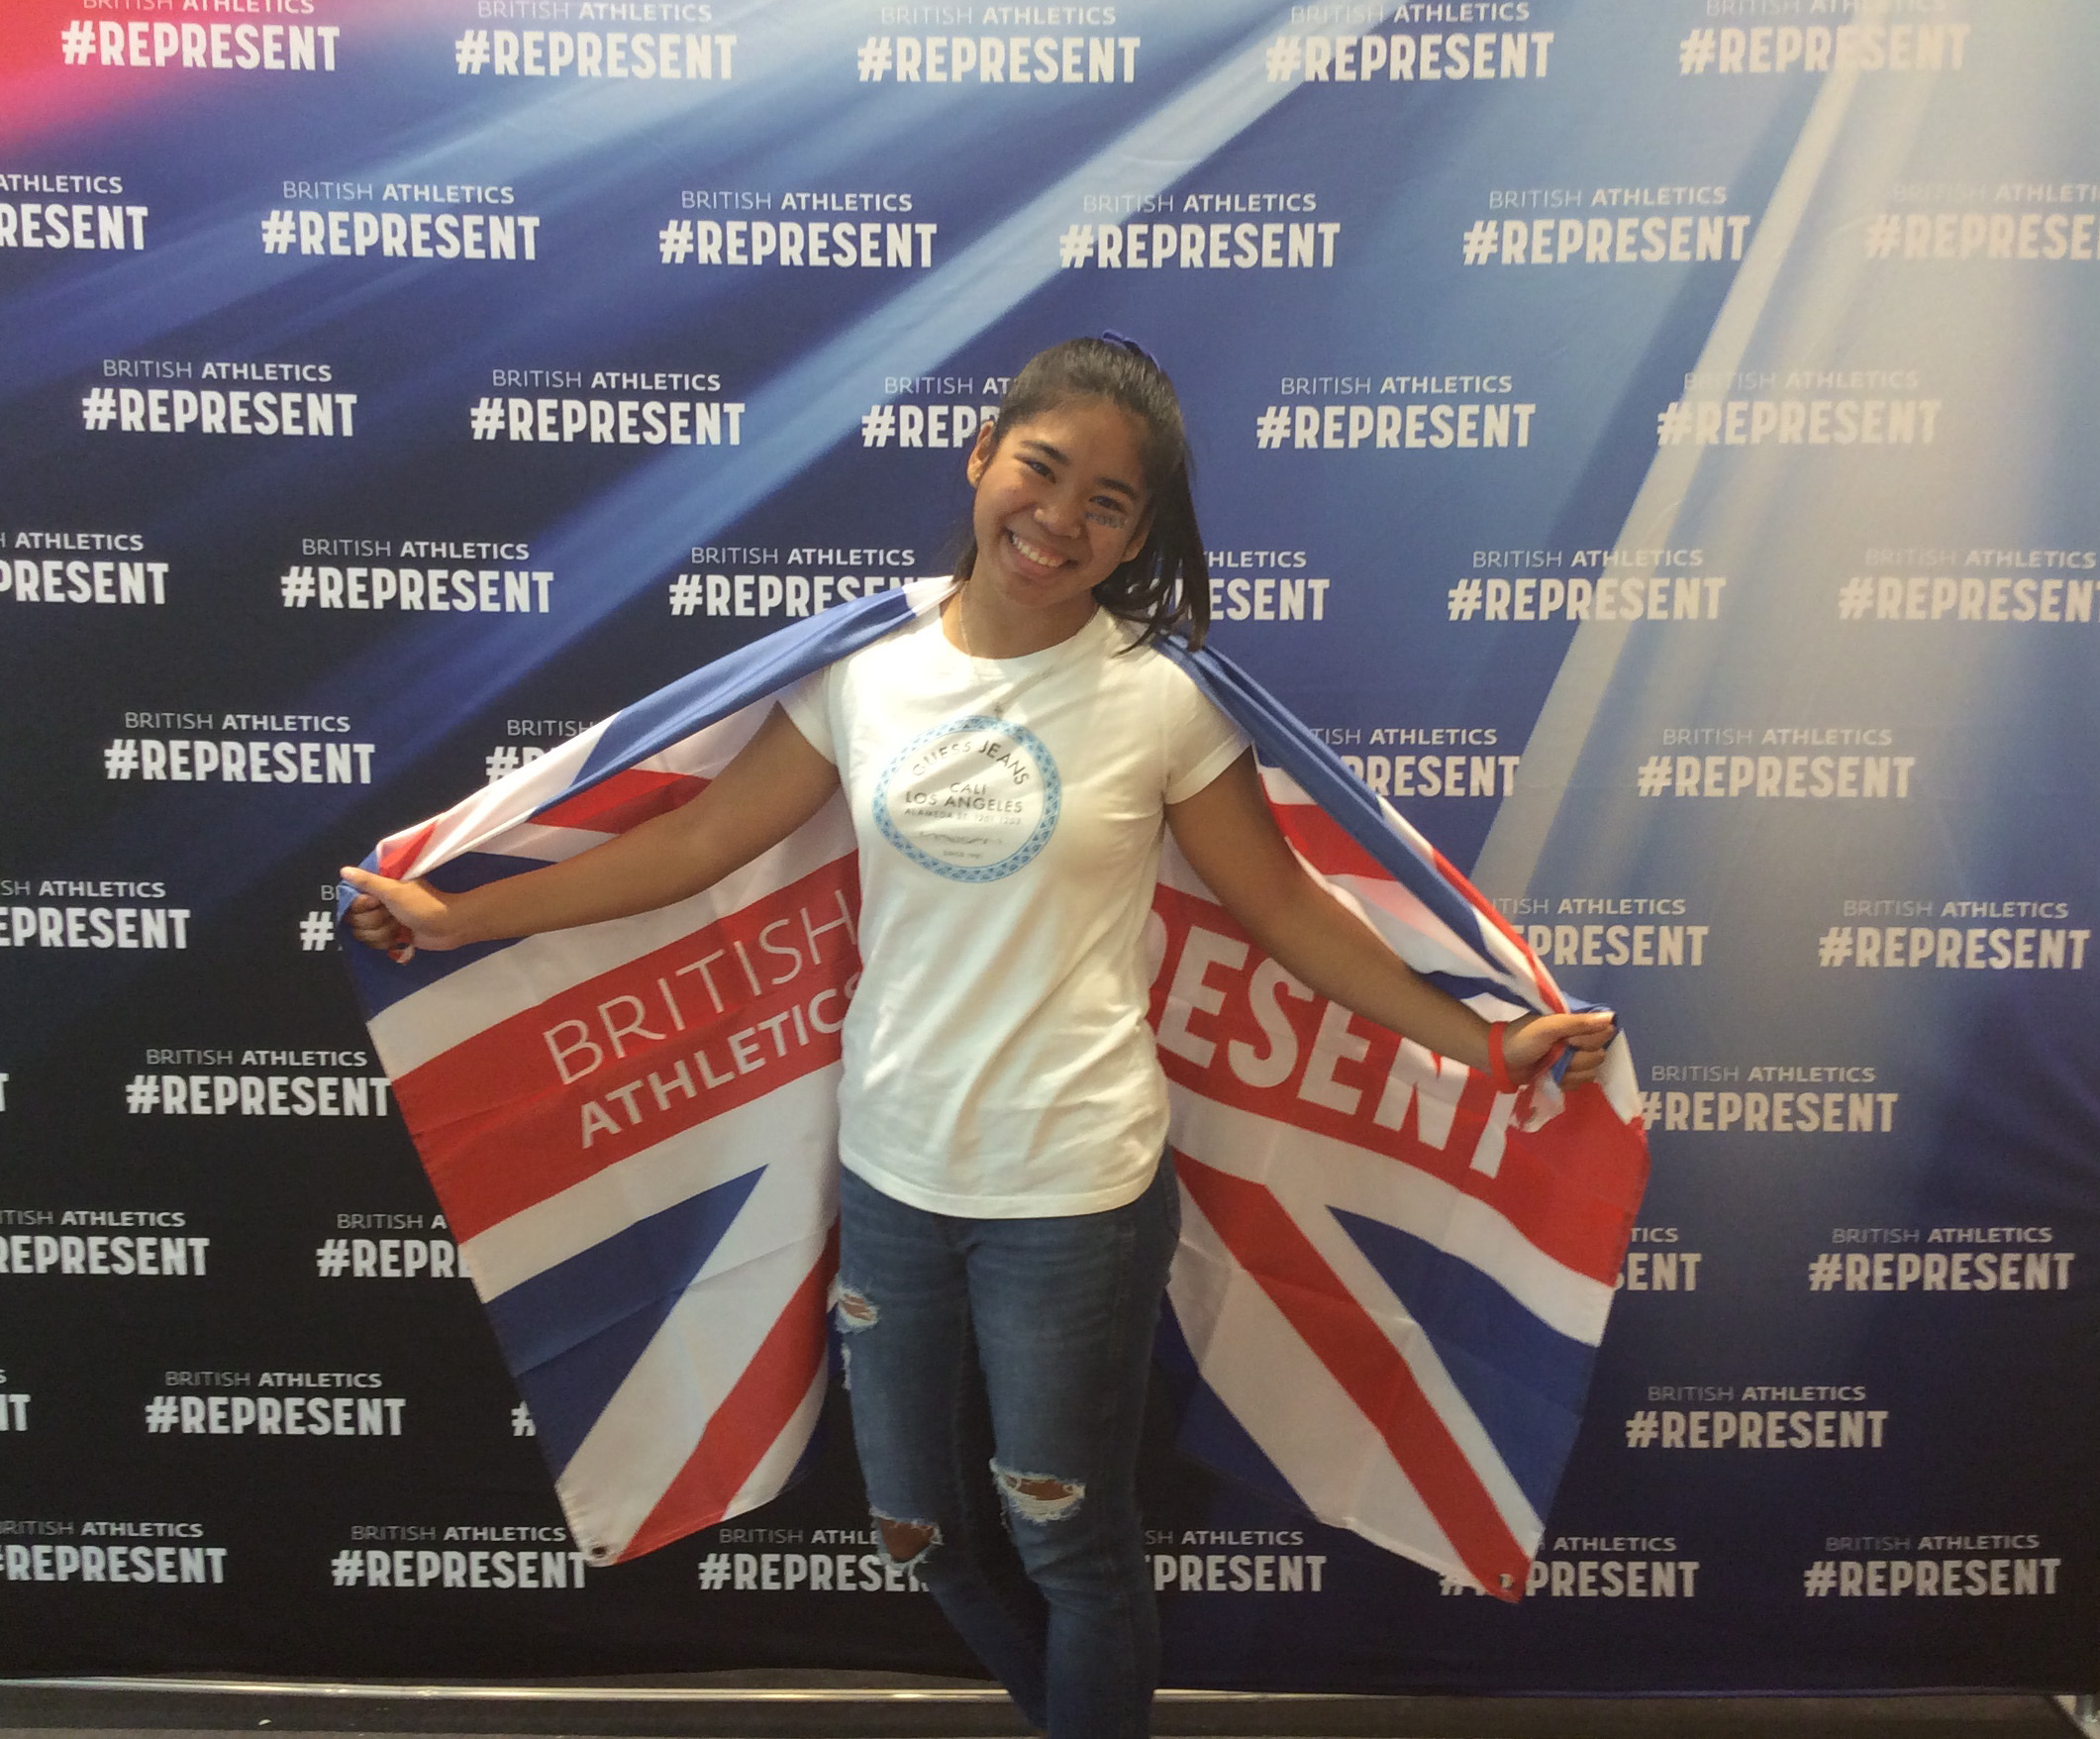 Fan and Represent GB Flag